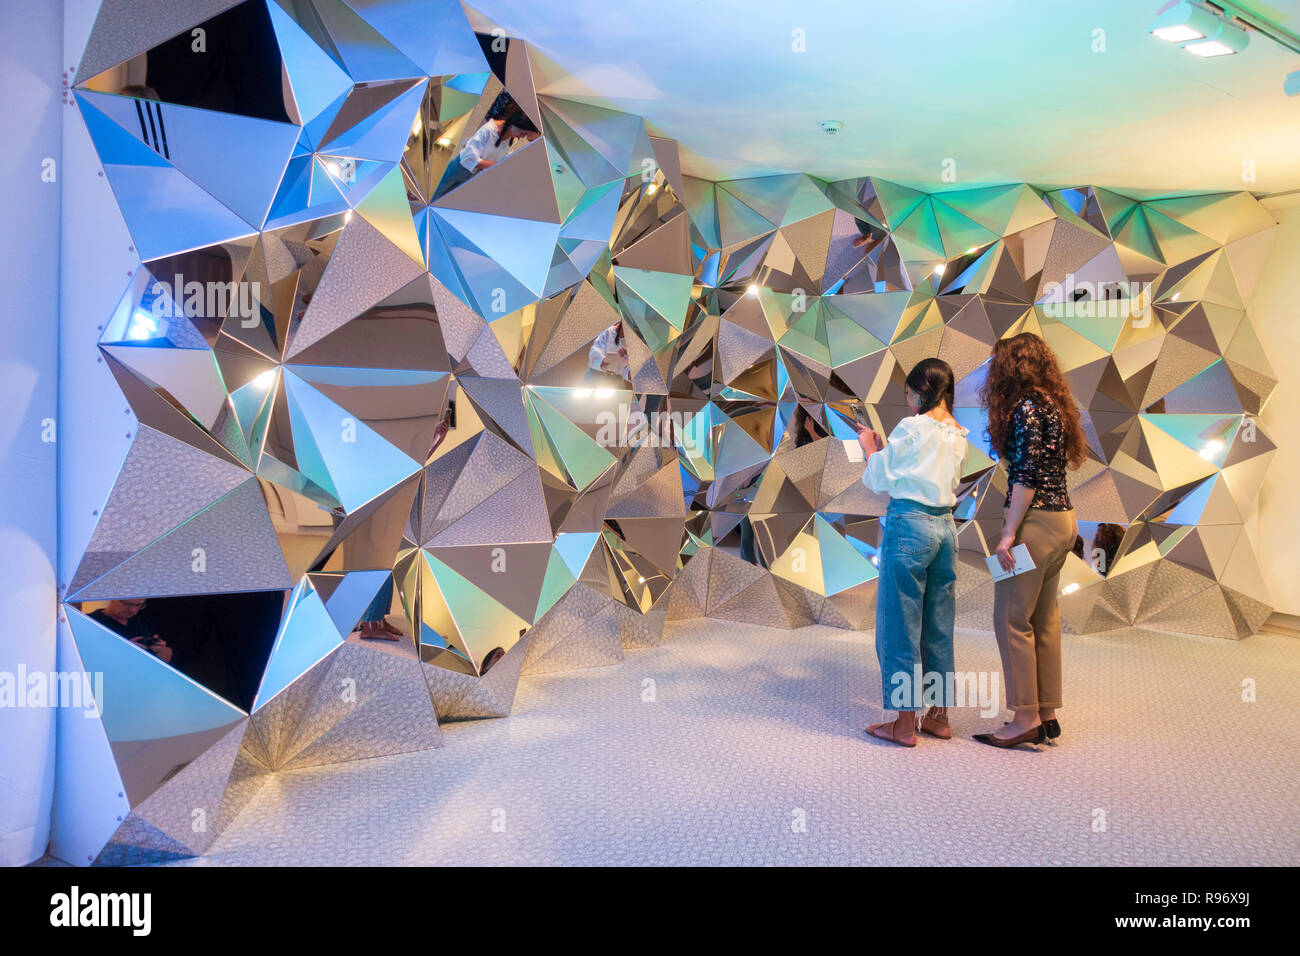 Sharjah, UAE. 20 December 2018. Modern Islamic art is presented at the  21st Islamic Arts Festival which opened this week in Sharjah, UAE.  The festival runs until 19 January 2019 and features work by International artists at various locations across the city. Pictured; Sculpture Prism Wall by Kaz Shirana Credit: Iain Masterton/Alamy Live News - Stock Image